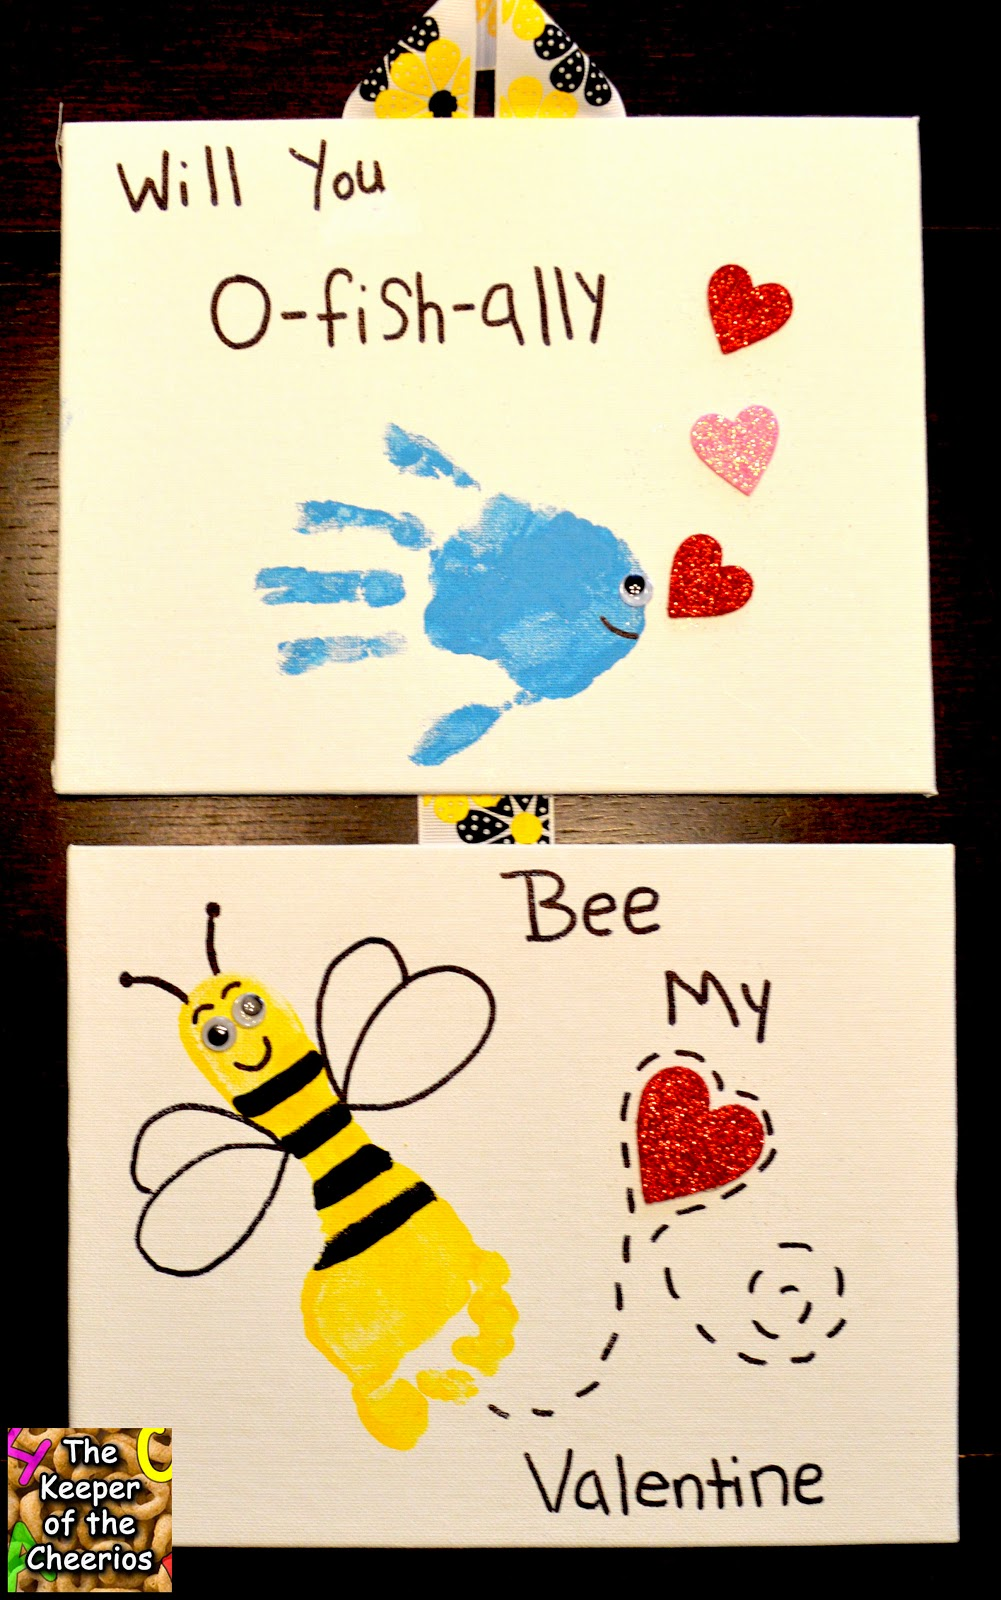 There could not bee a cuter Valentine than this one!